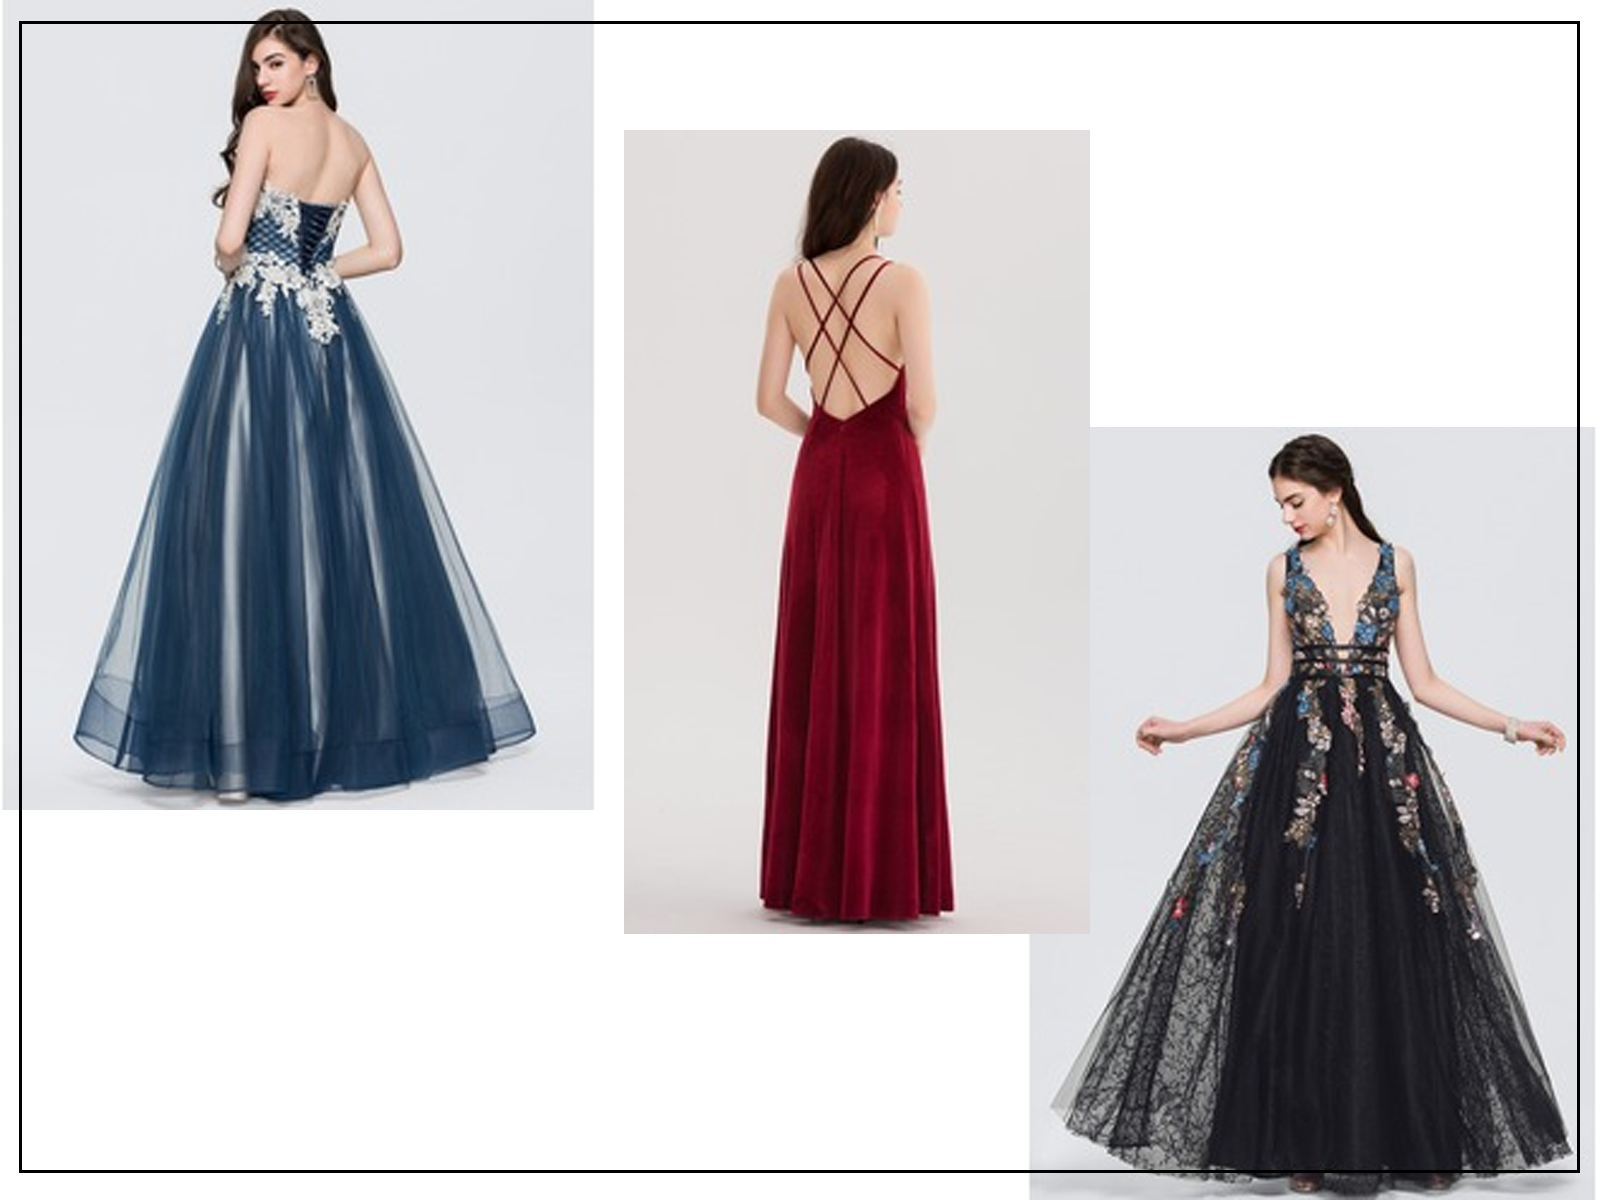 ee020d0573b How to Choose the Perfect Prom Dress